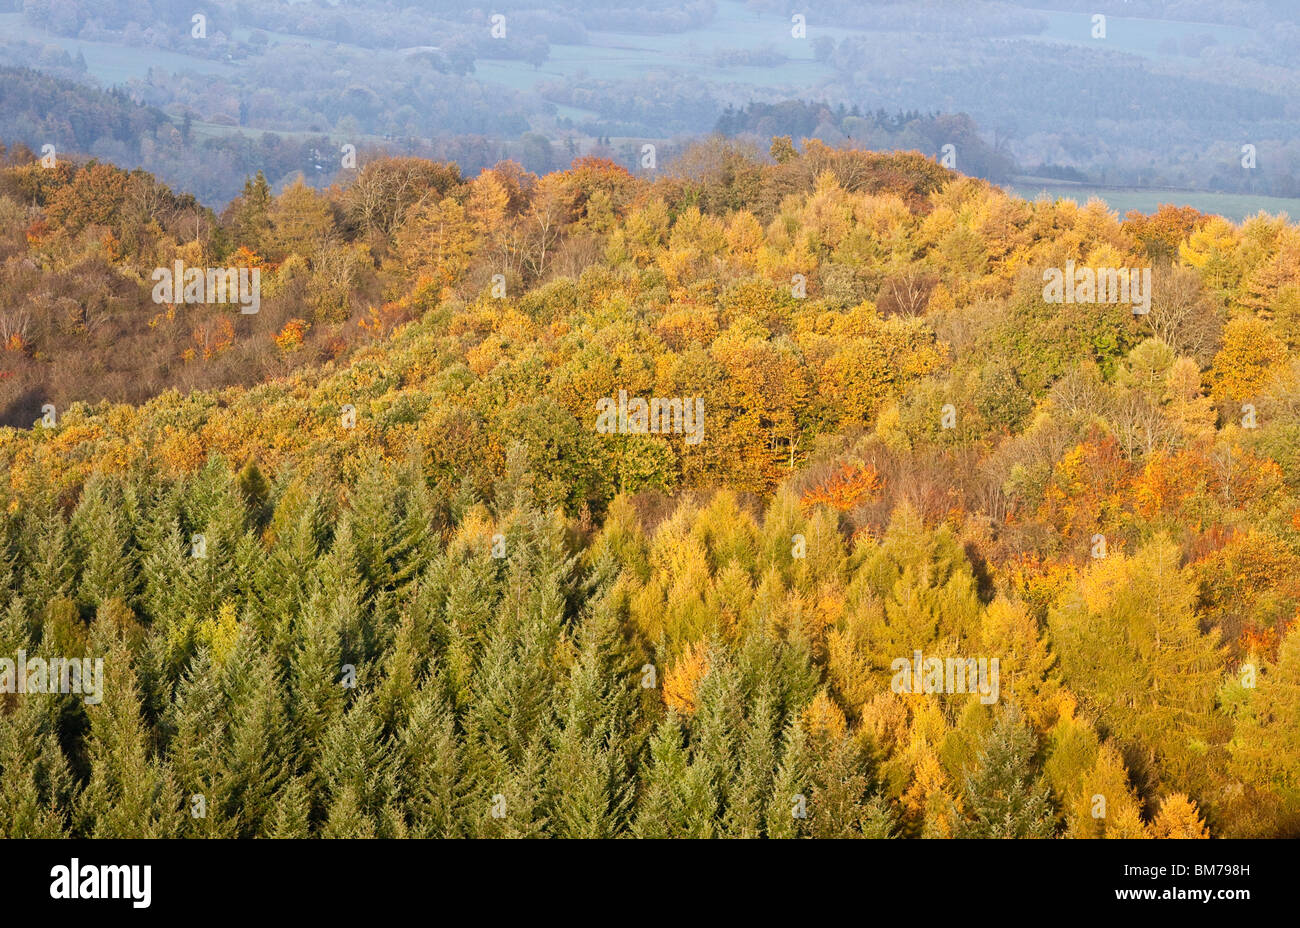 An autumn view from Symonds Yat Rock to the Forest of Dean, Gloucestershire, England, UK - Stock Image